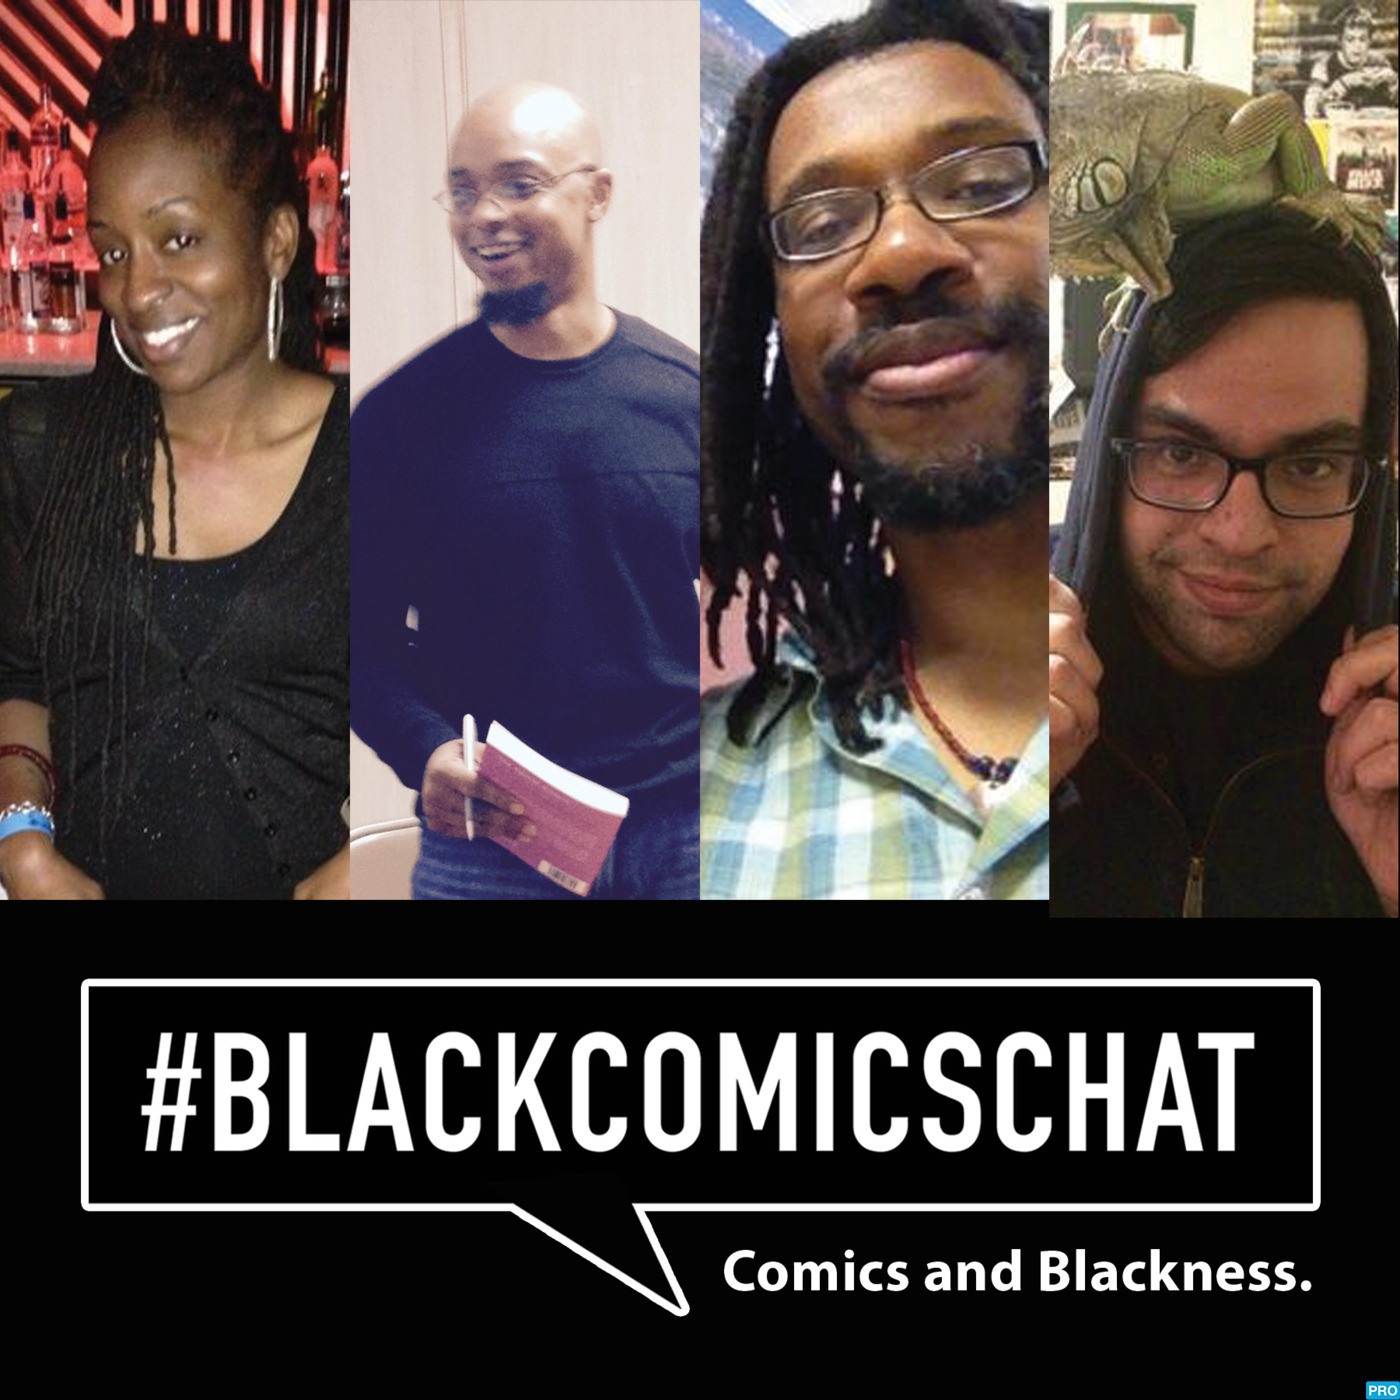 BlackComicsChat's Podcast